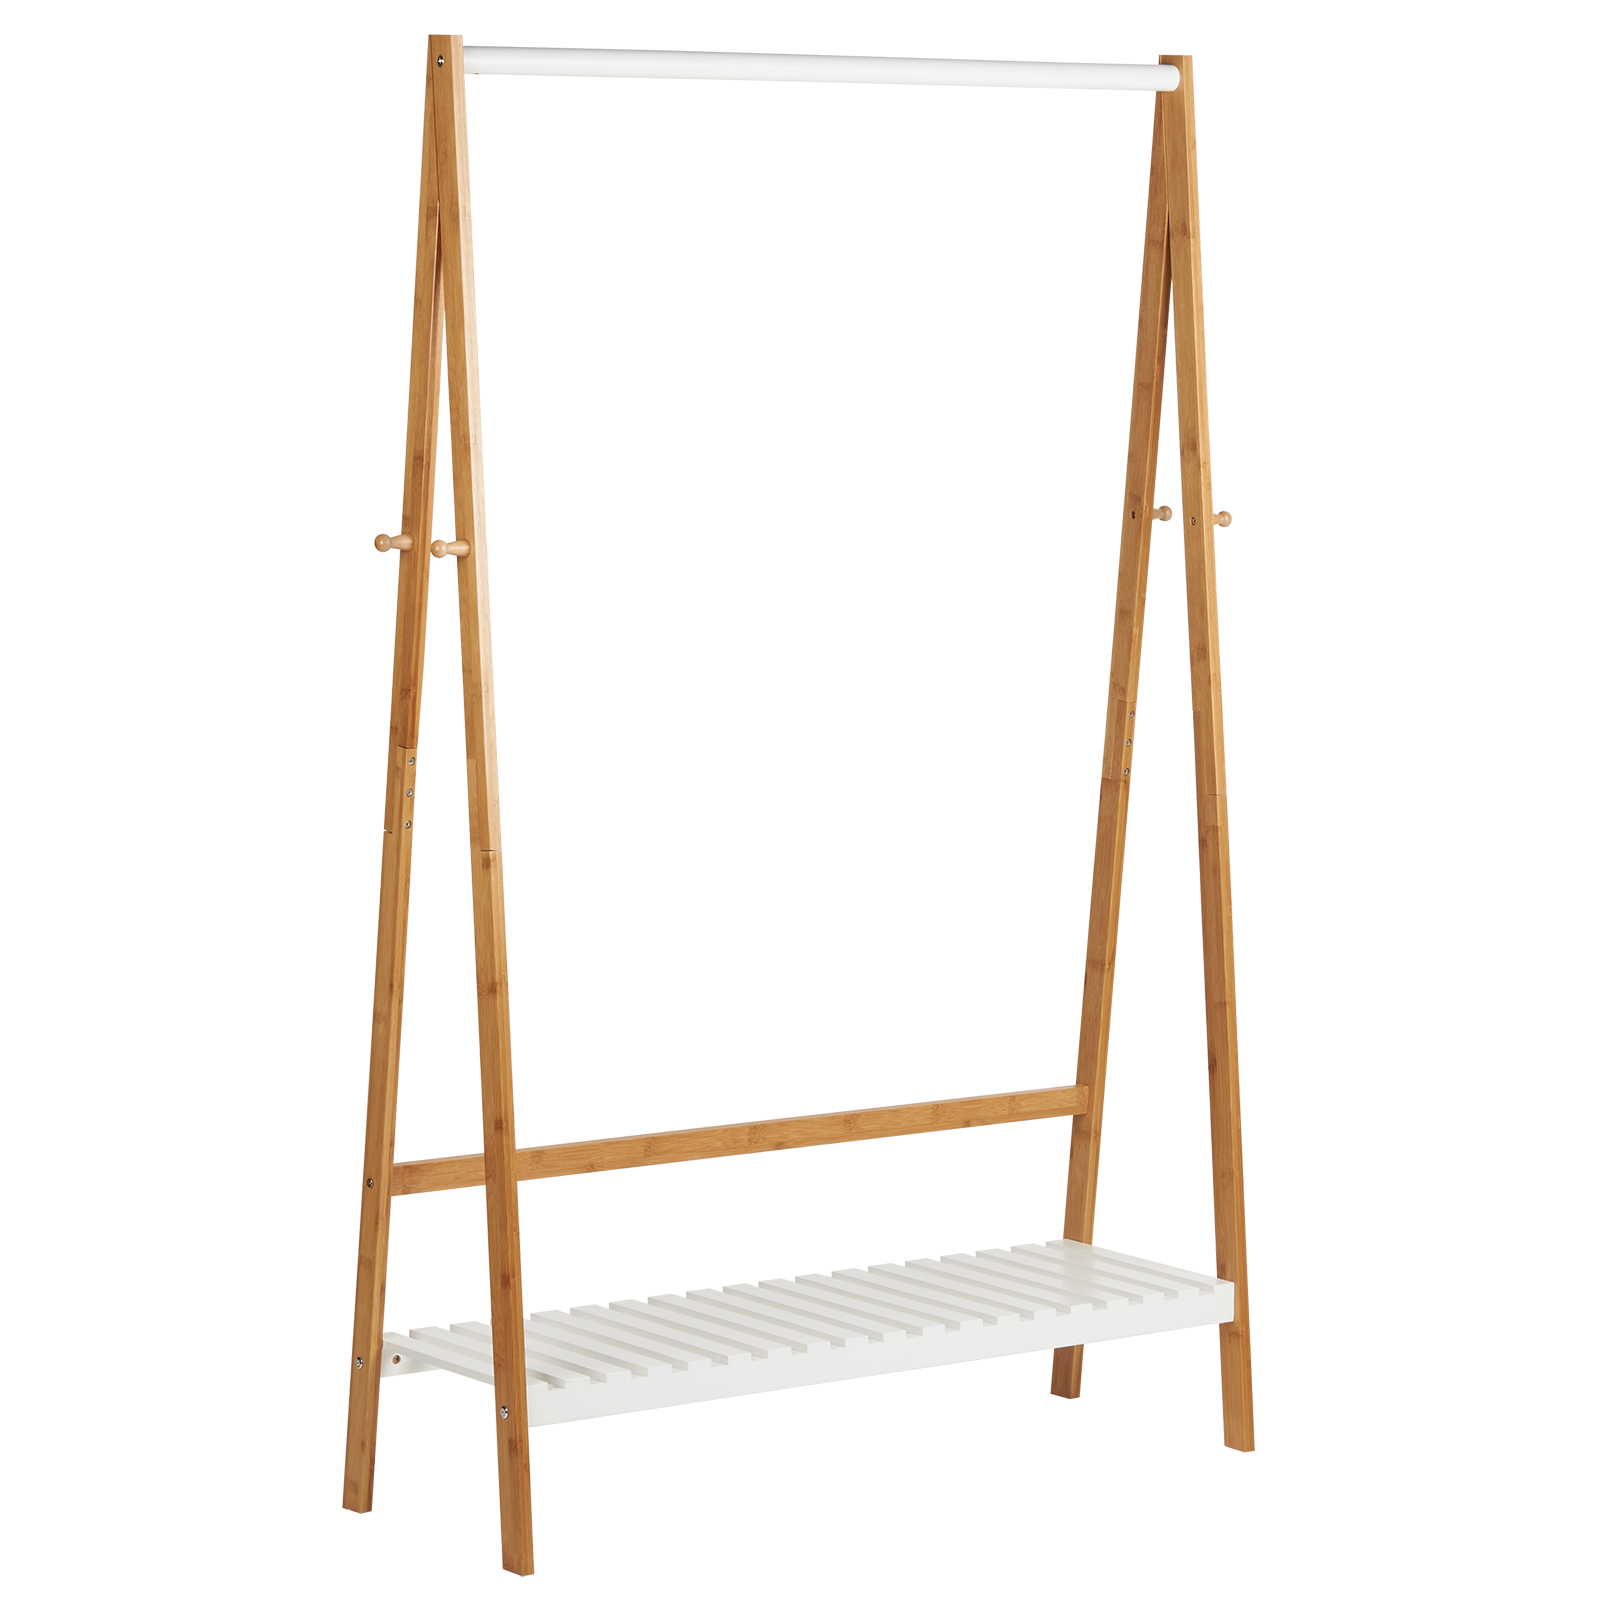 Wooden Clothes Rack: Hartleys Wooden Clothes Rail Hanging Garment Rack Stand